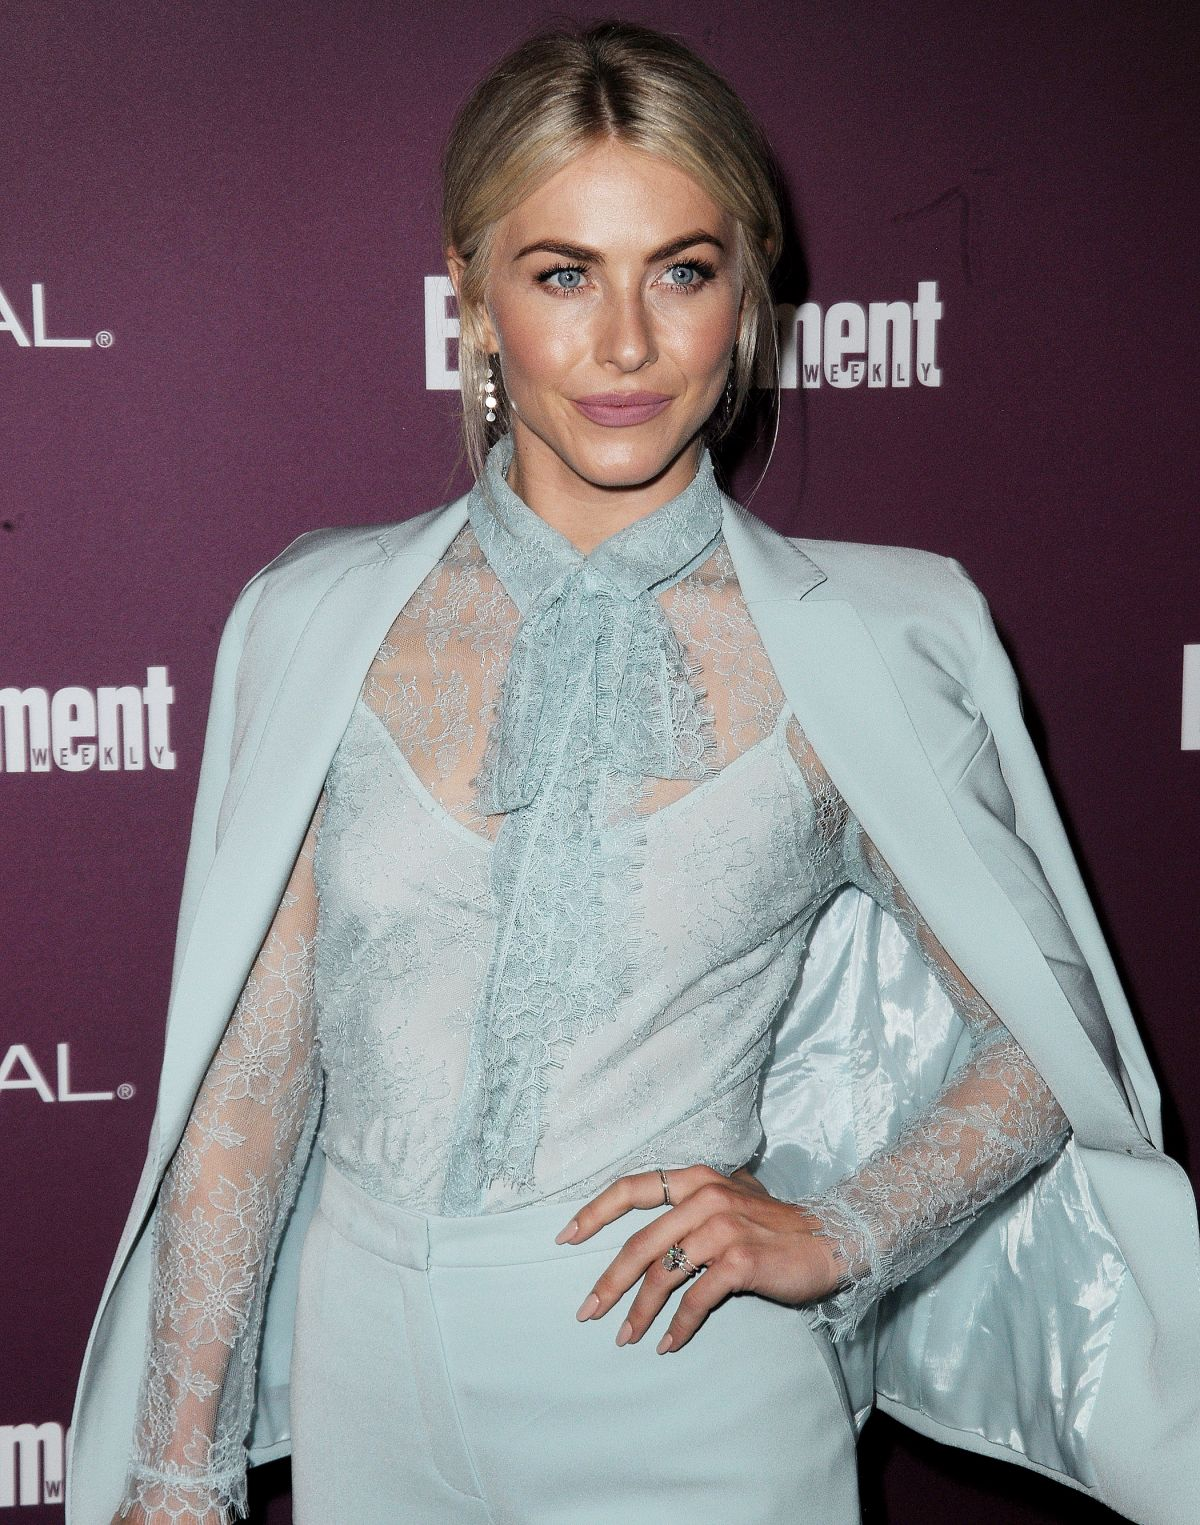 JULIANNE HOUGH at 2017 Entertainment Weekly Pre-emmy Party in West Hollywood 09/15/2017